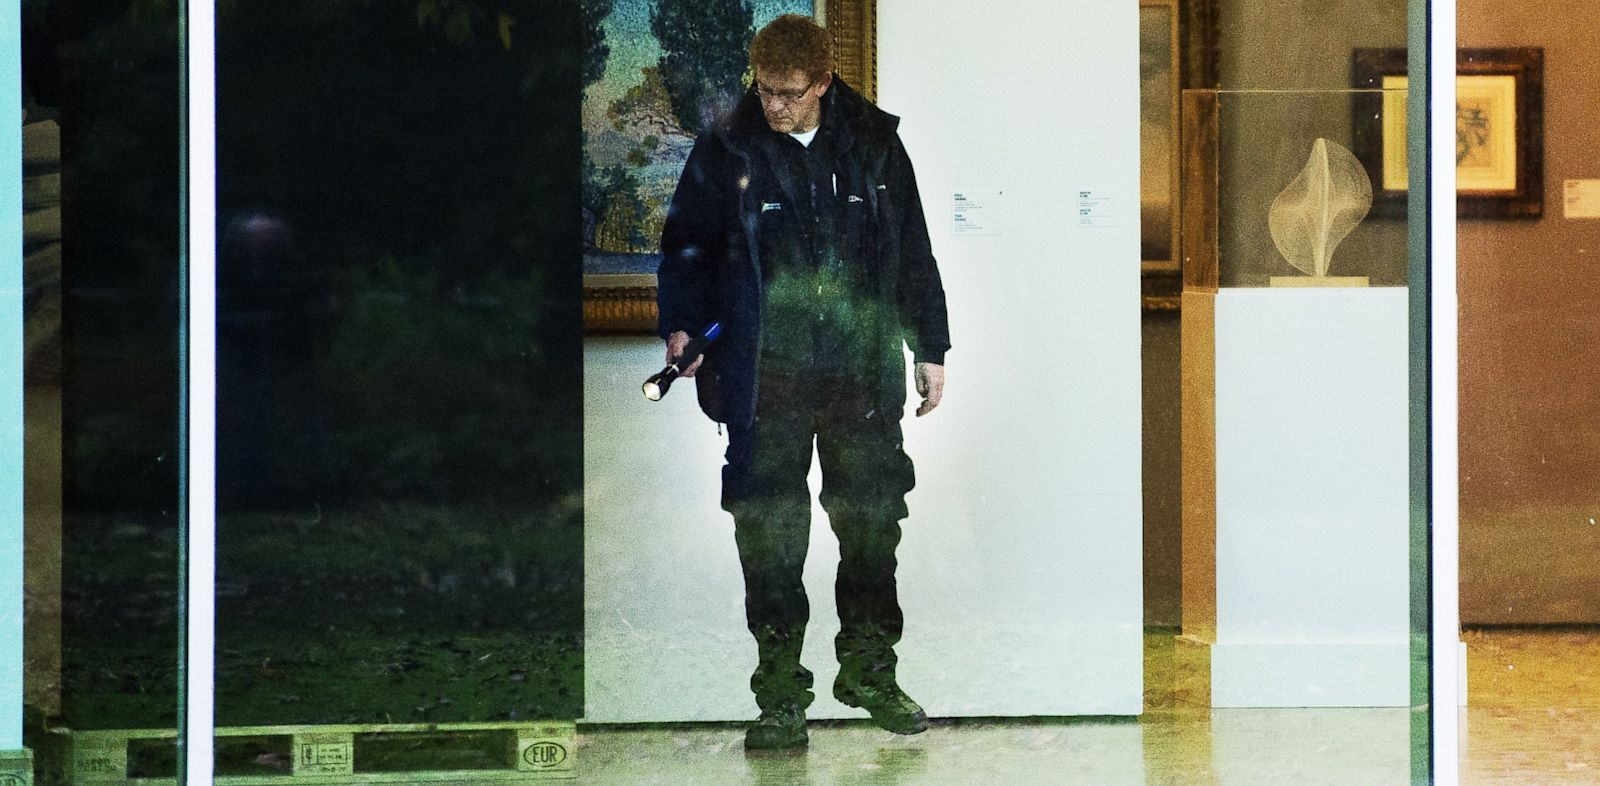 PHOTO: An investigator searches the Rotterdam Kunsthal museum break-in during the night on Oct. 16, 2012.